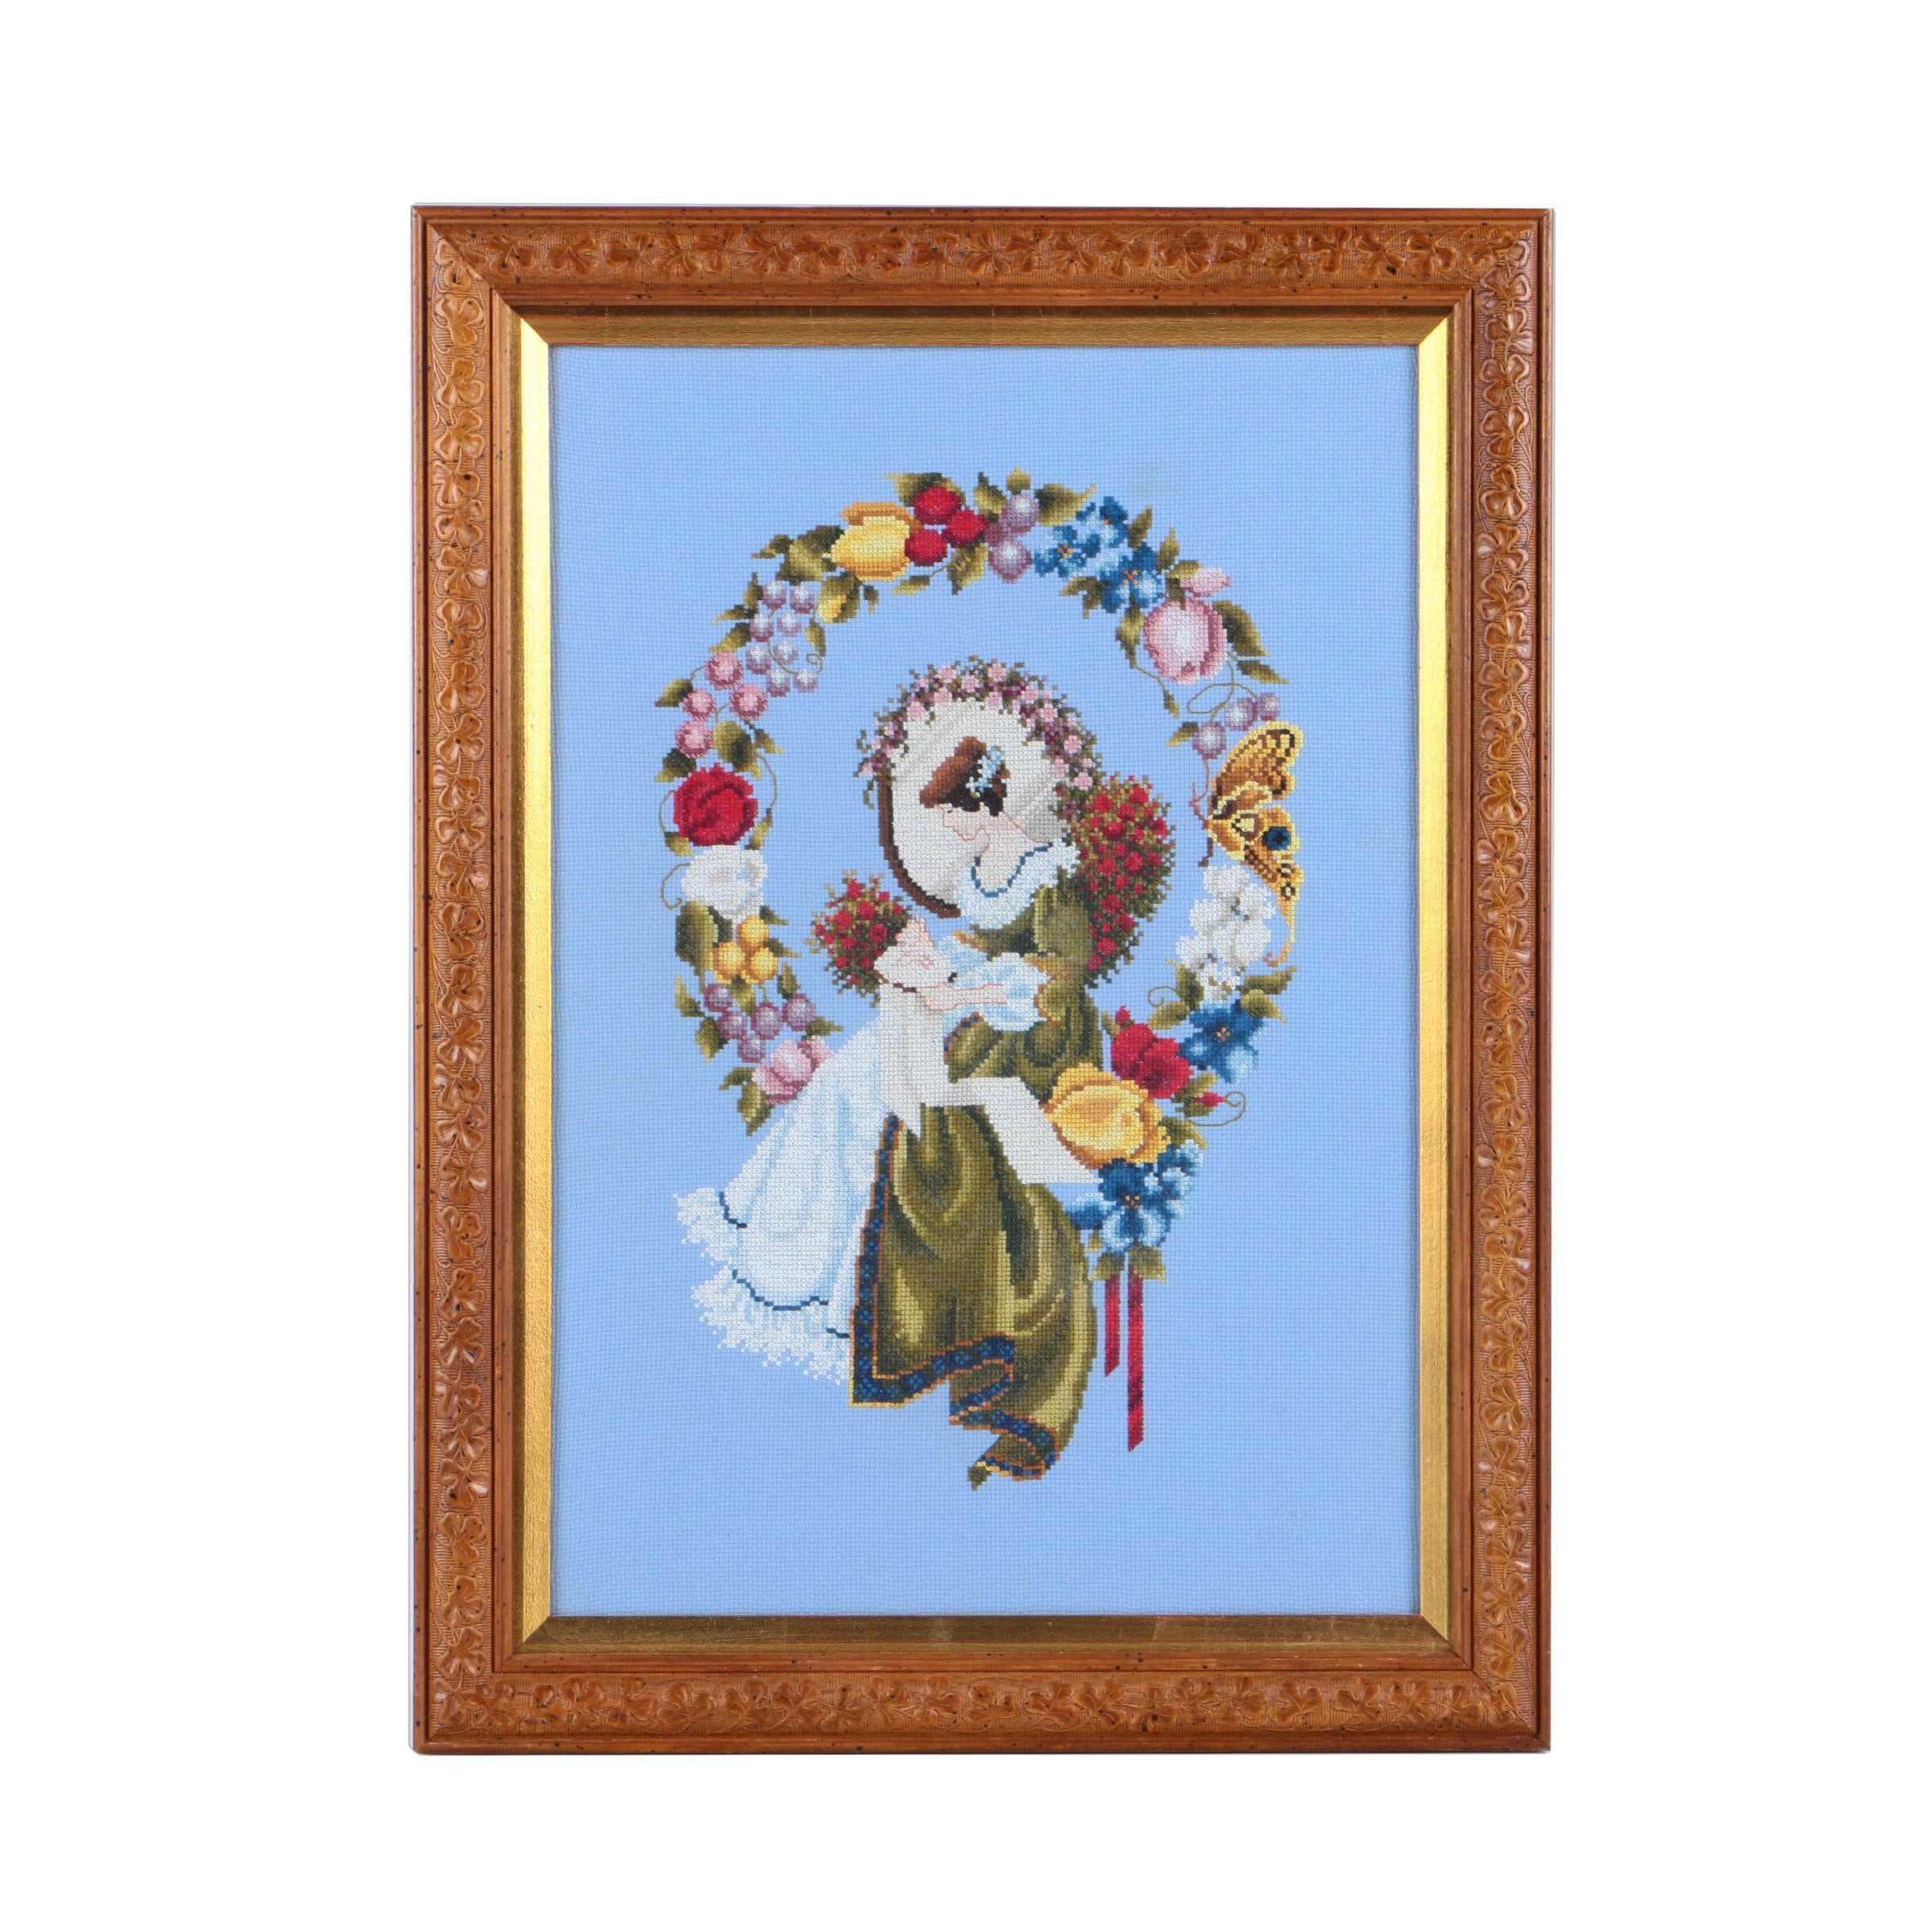 Cross-Stitch Embroidery of a Woman Surrounded by a Wreath